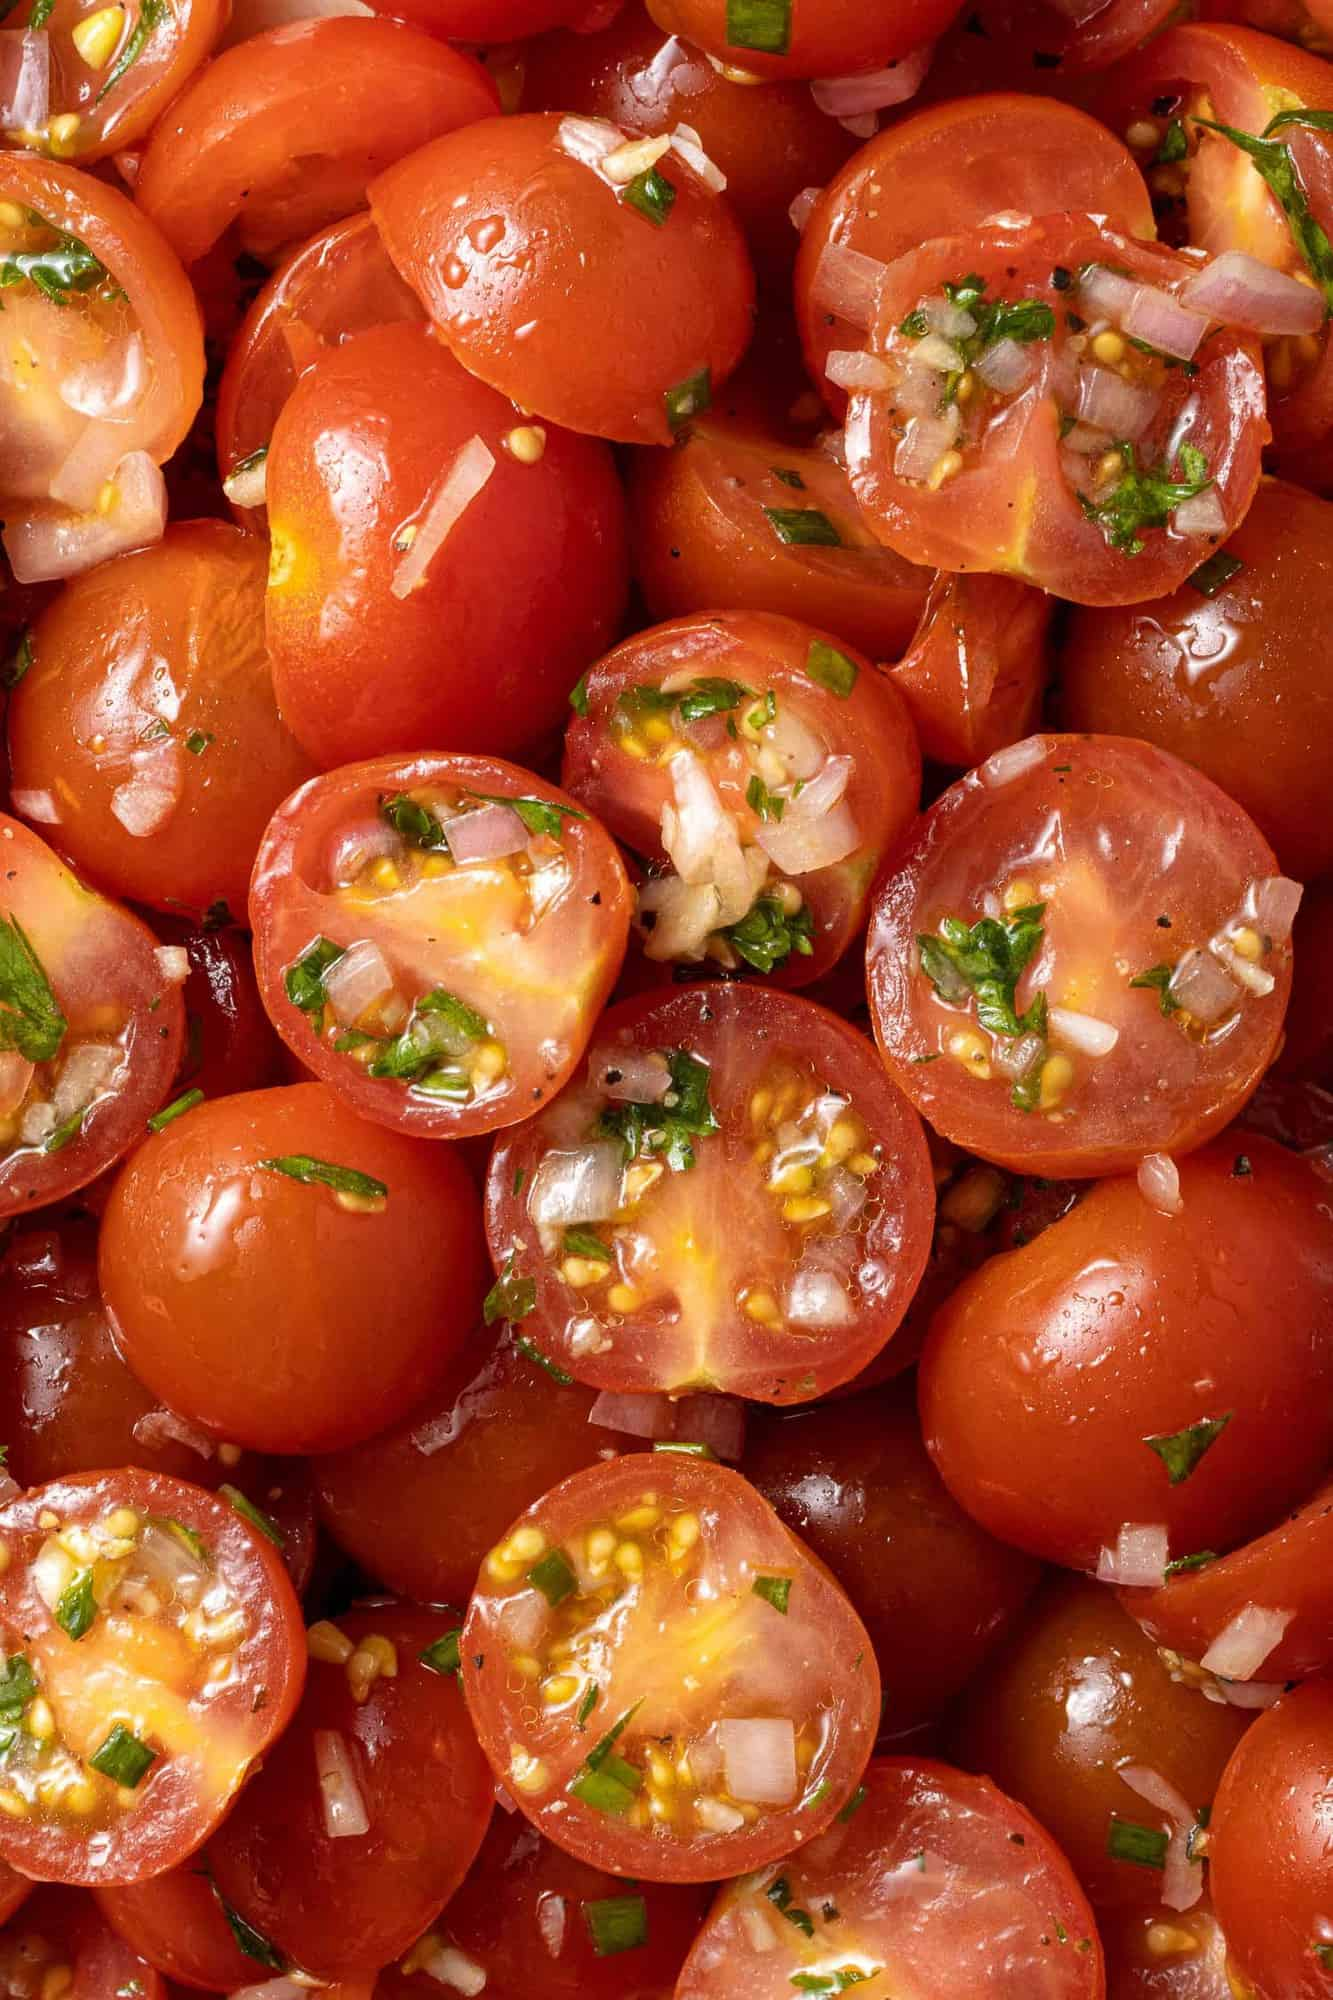 Close up of marinated tomatoes, filling image.